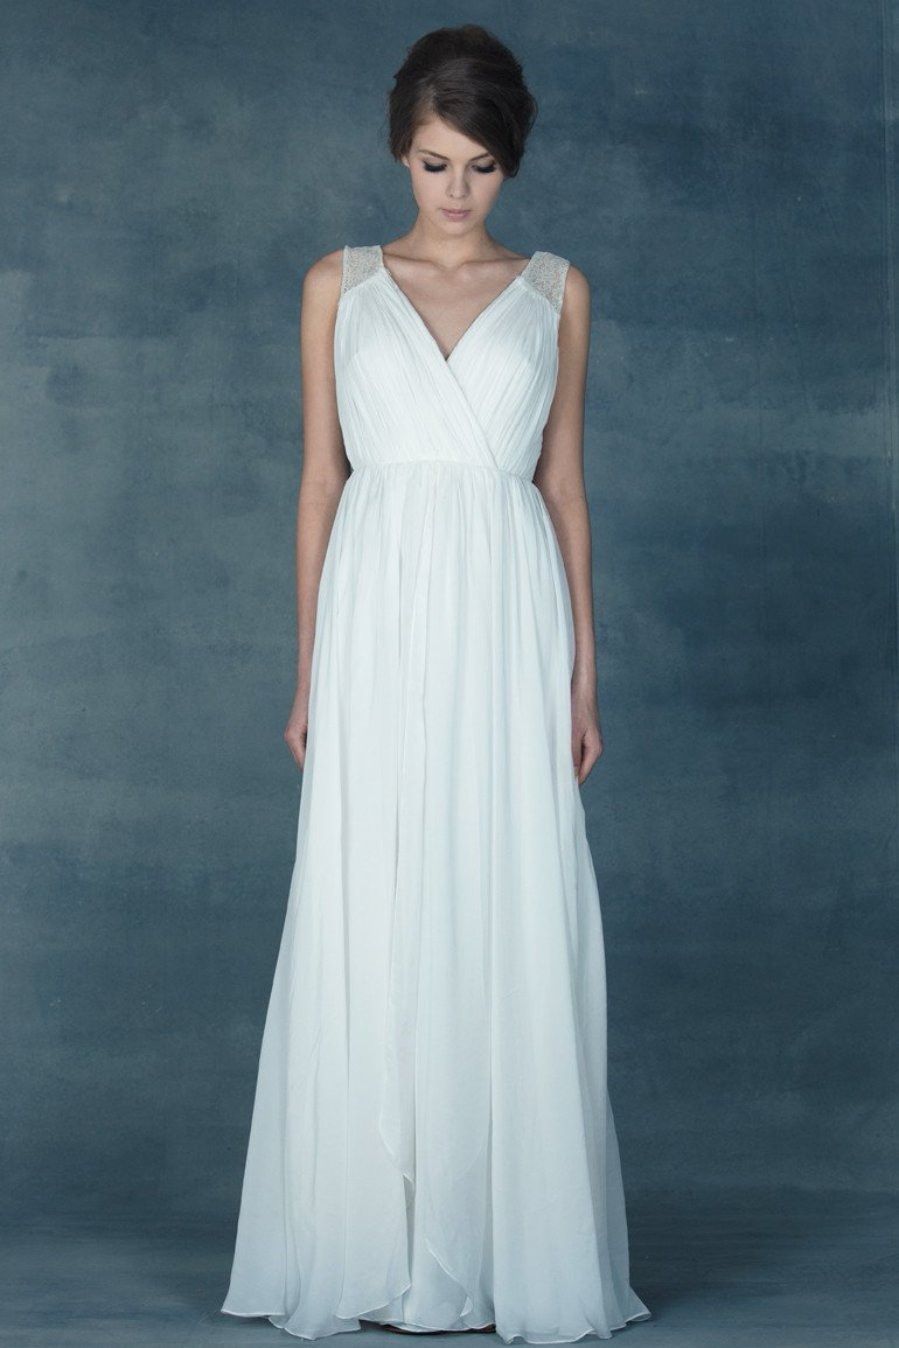 designer sample wedding dresses uk